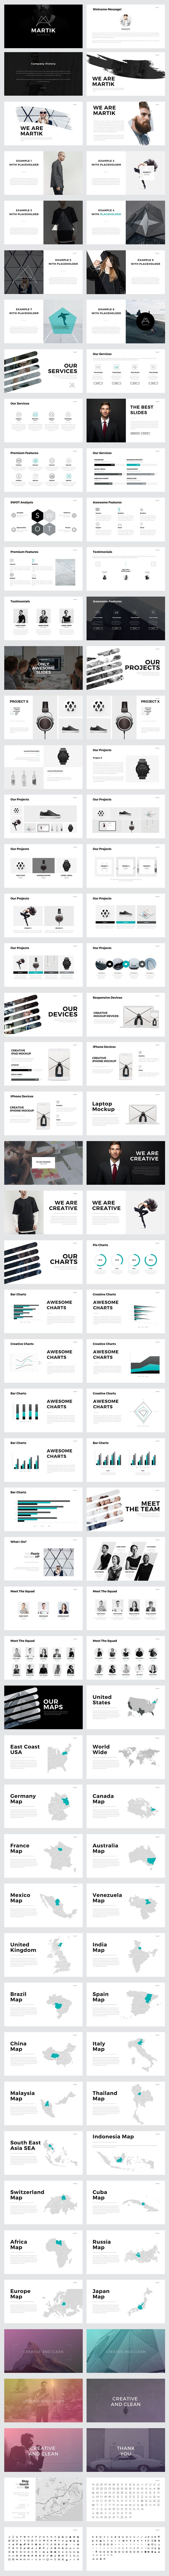 Martik PowerPoint Template by Slidedizer on @creativemarket